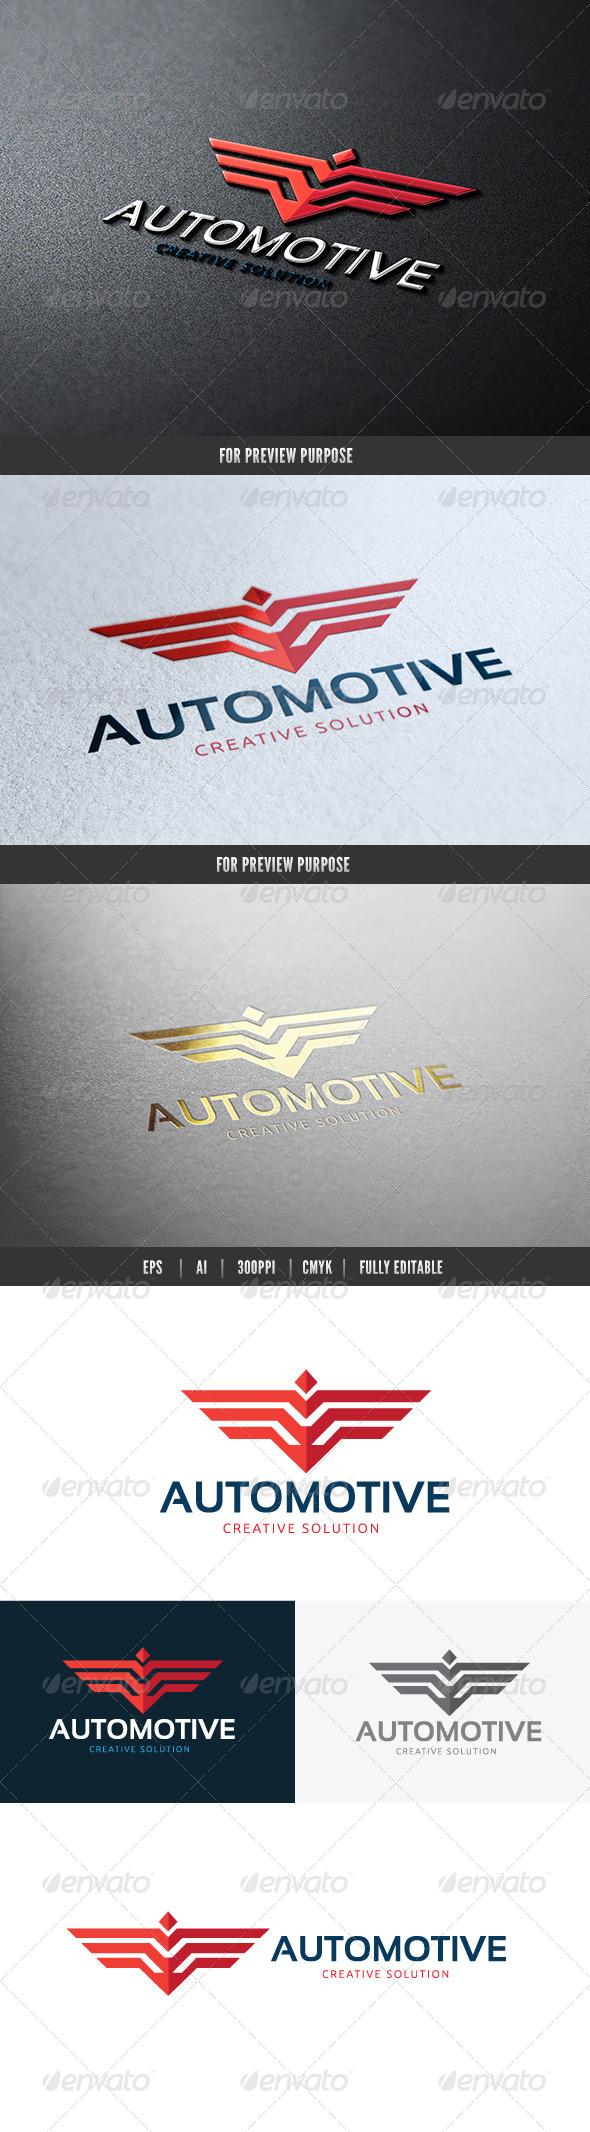 GraphicRiver Automotive Creative Solution Logo 7144644